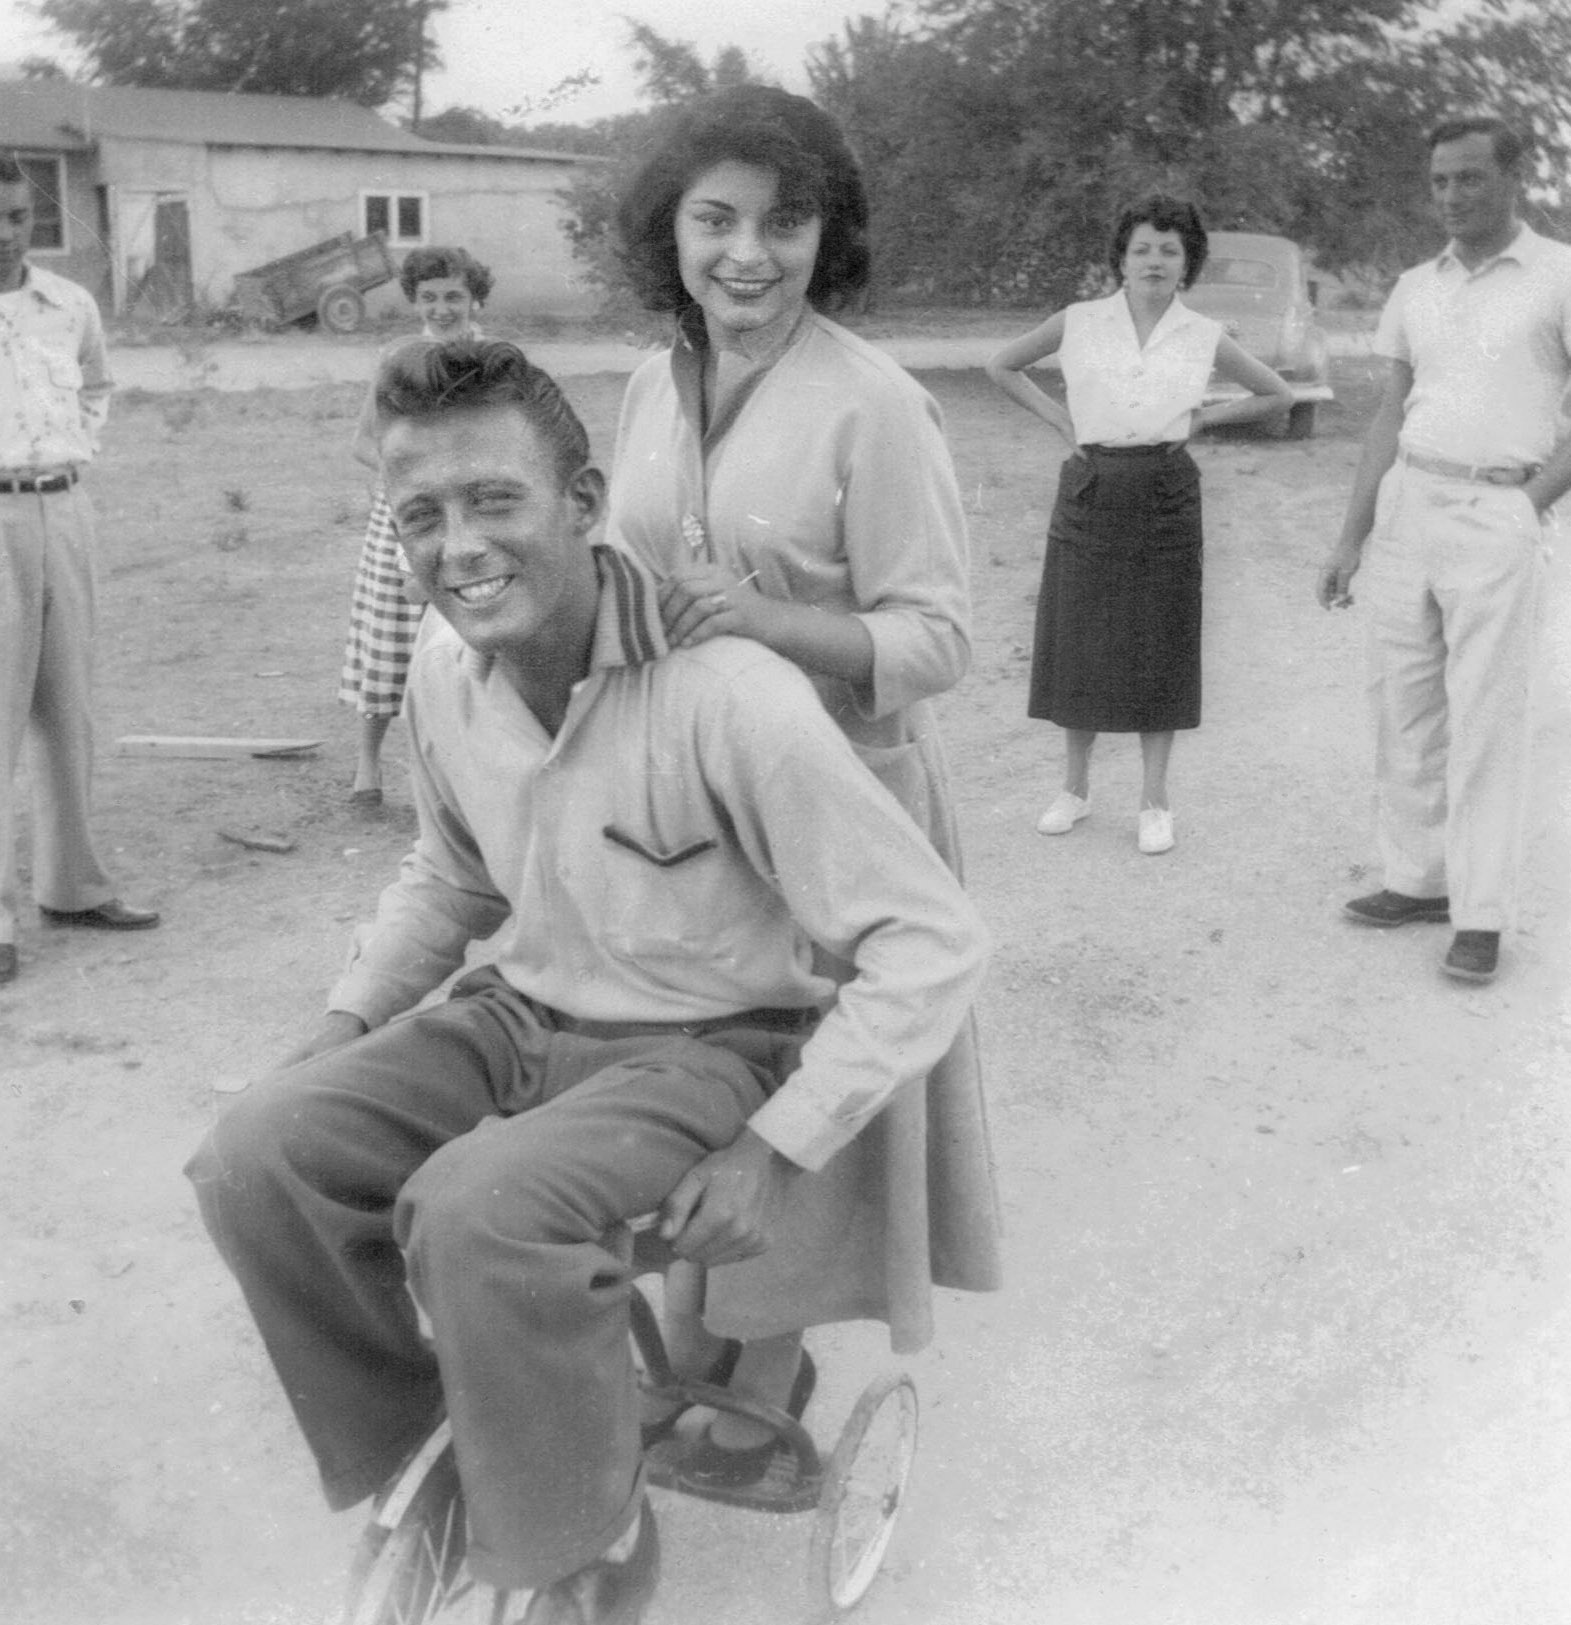 The newly extended family in Albuquerque, circa 1950. Steve and Molly on a tricycle.